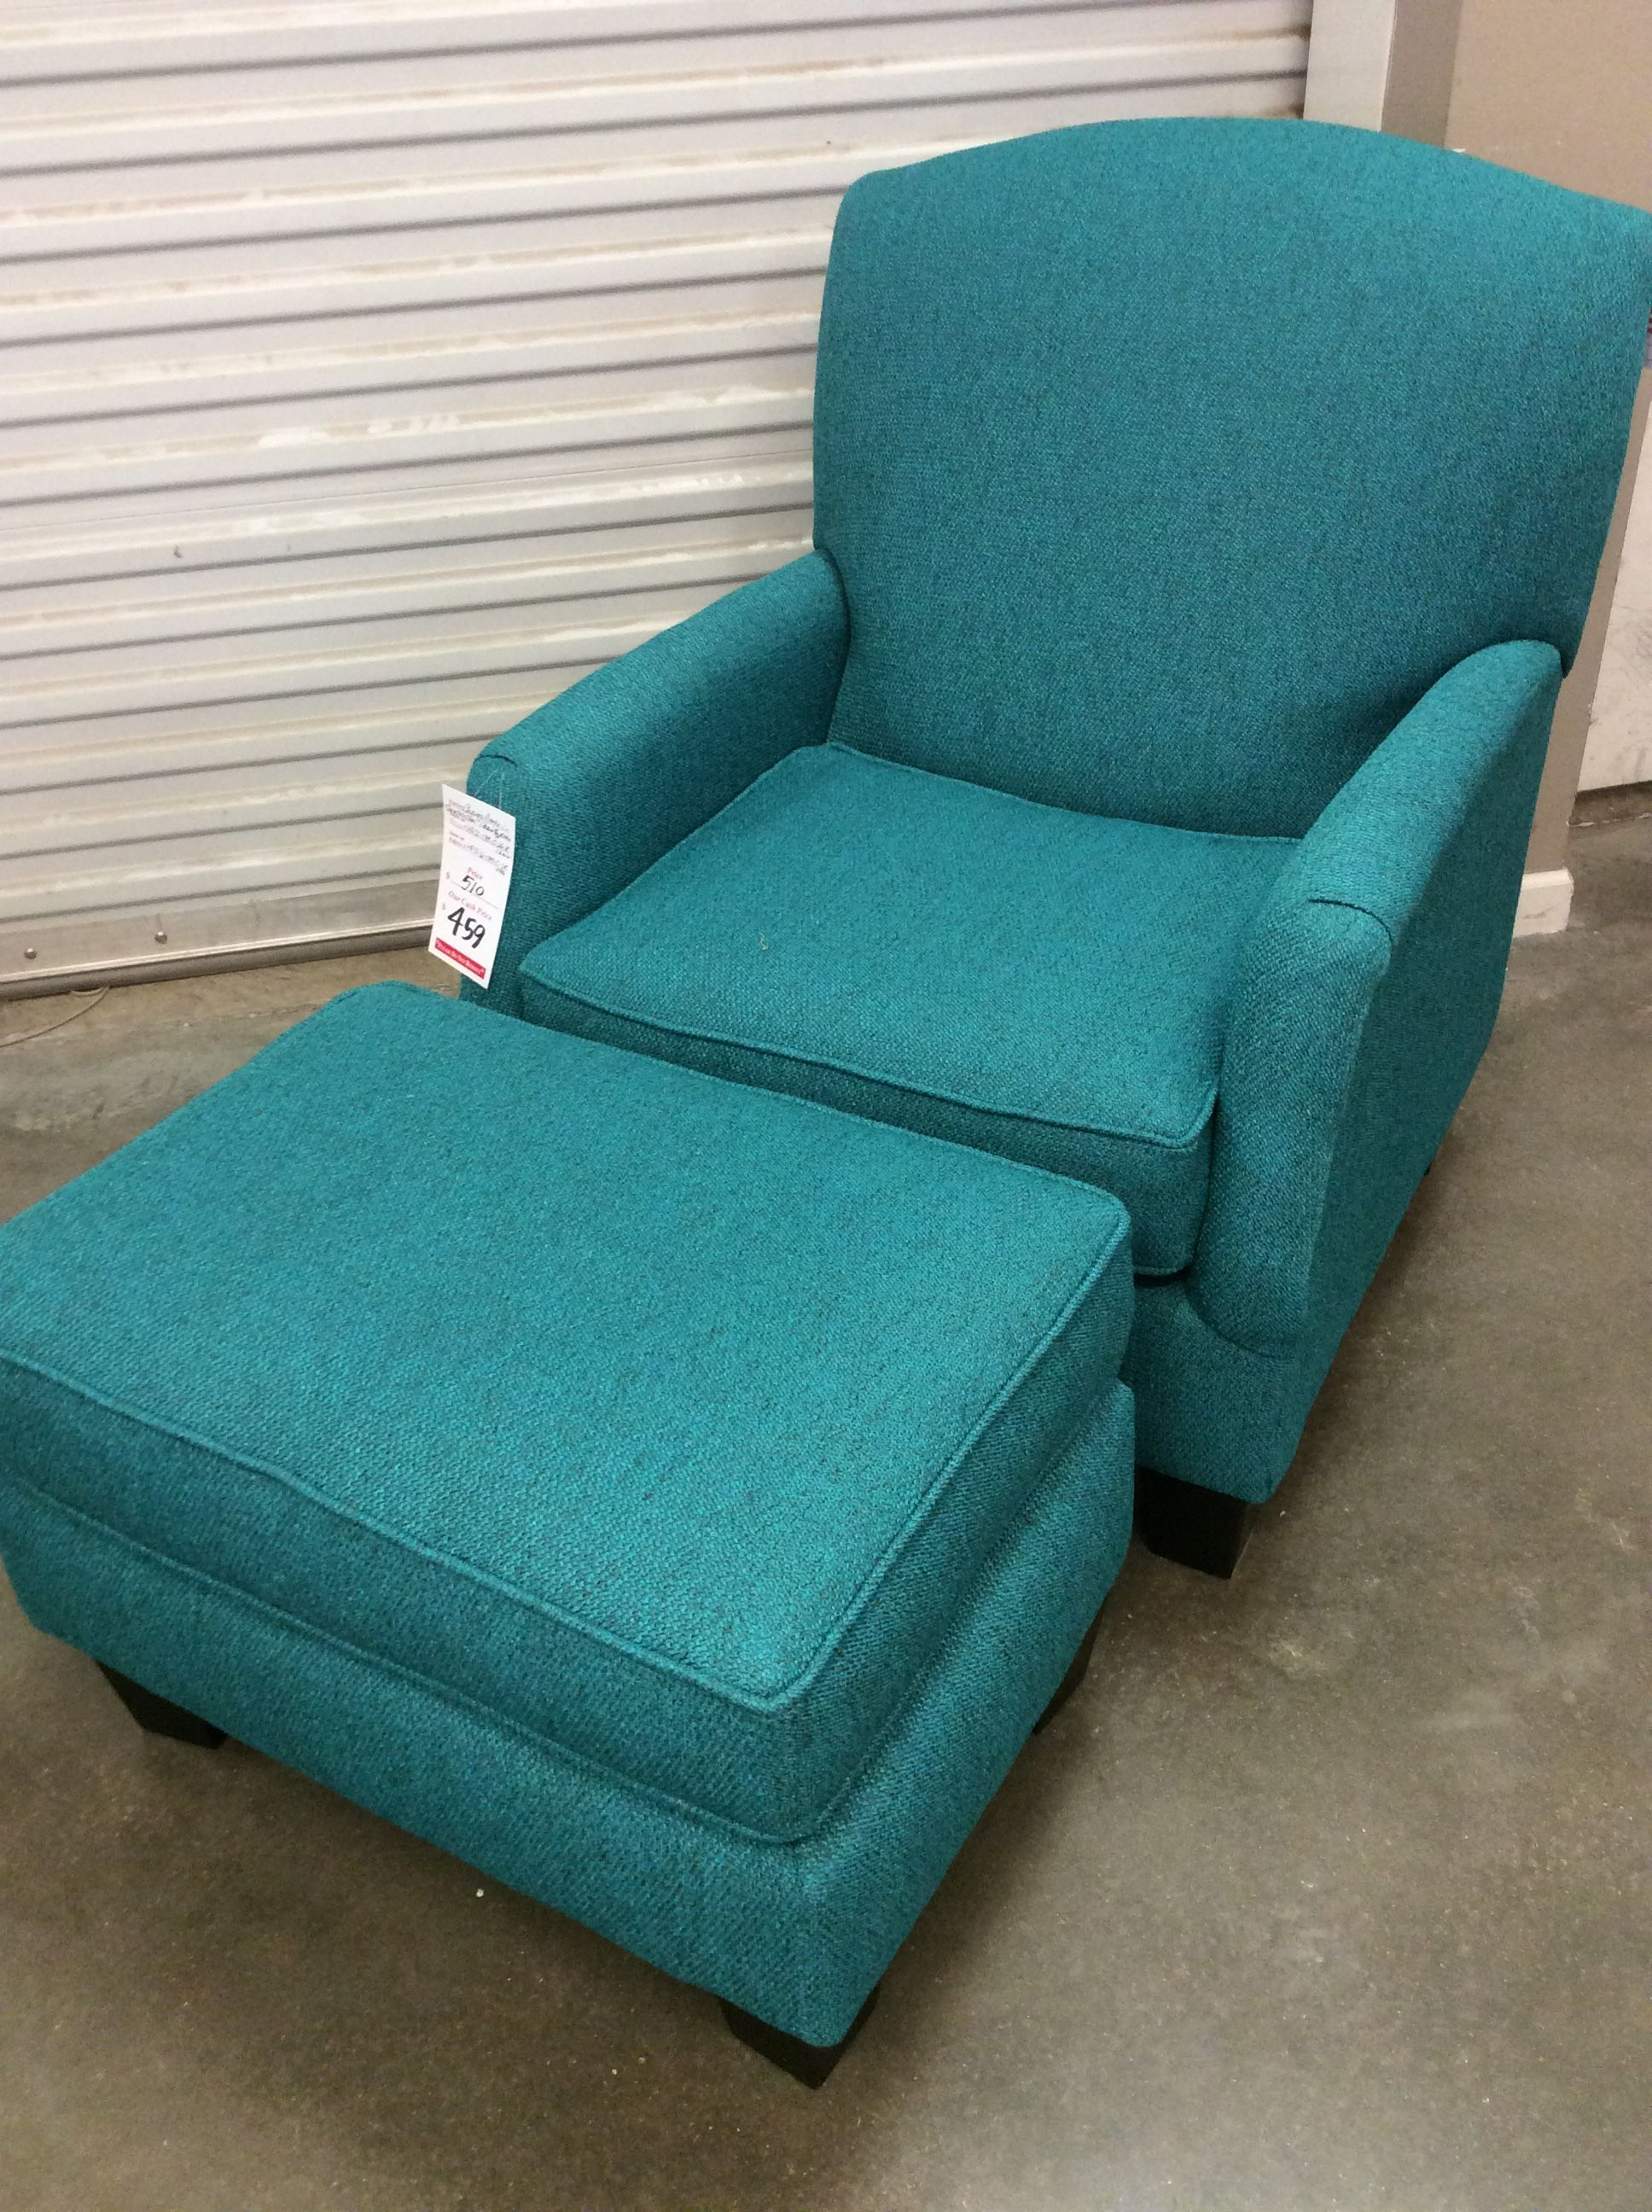 The Turquoise Chairs America Stationary Chair With Ottoman Would